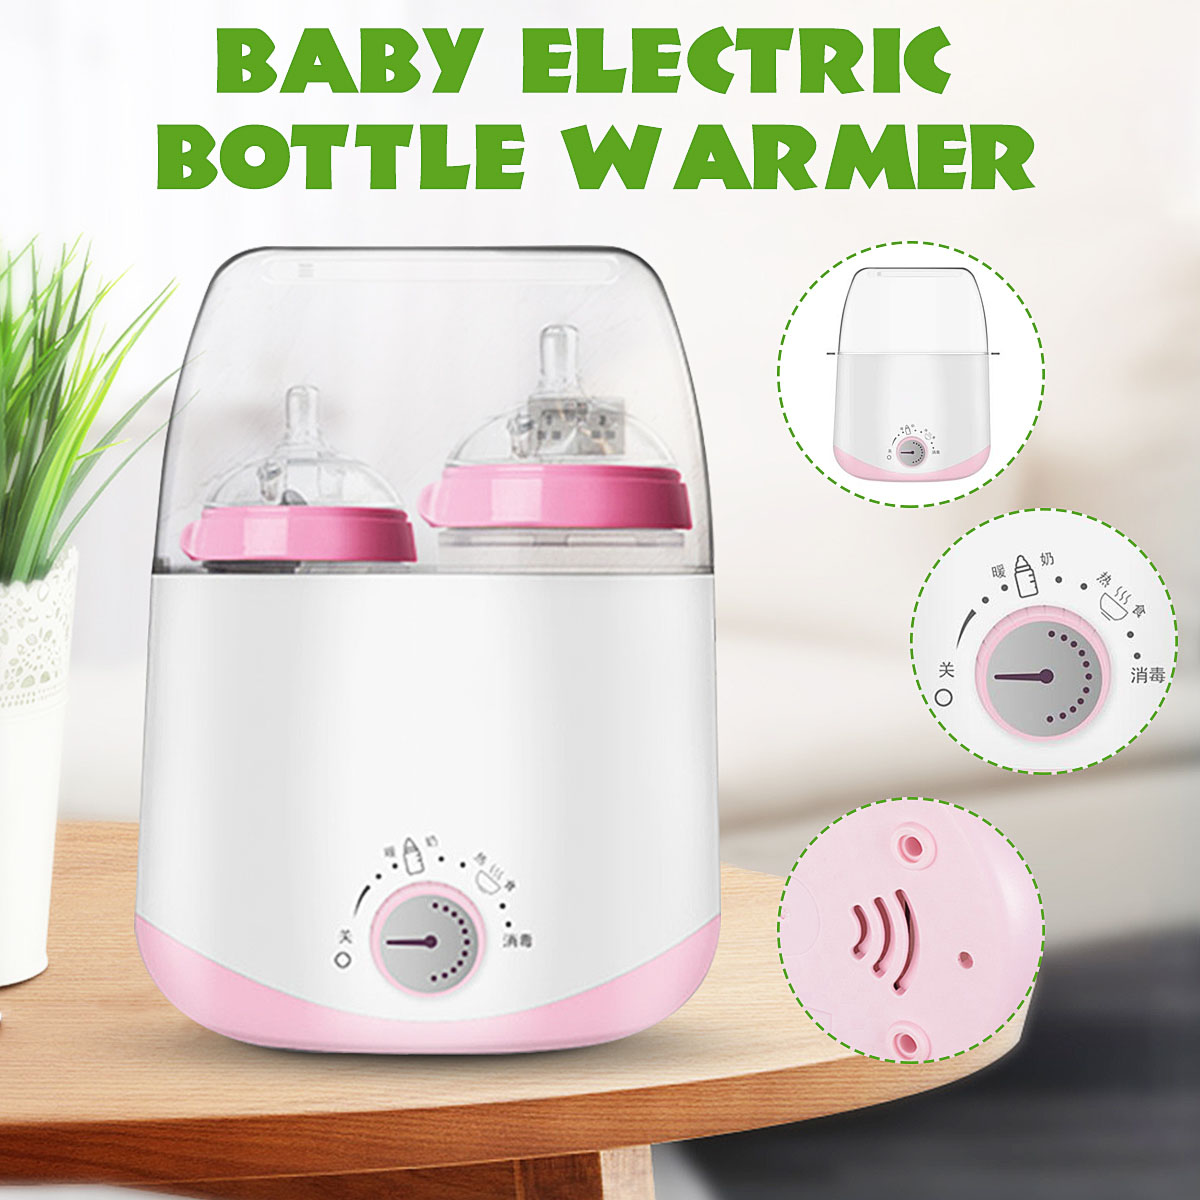 5 In1 Milk Warmer Heater Double Bottle Sterilizer For Breast Milk Feeding Baby Food Intelligent Automatic Thermostatic System